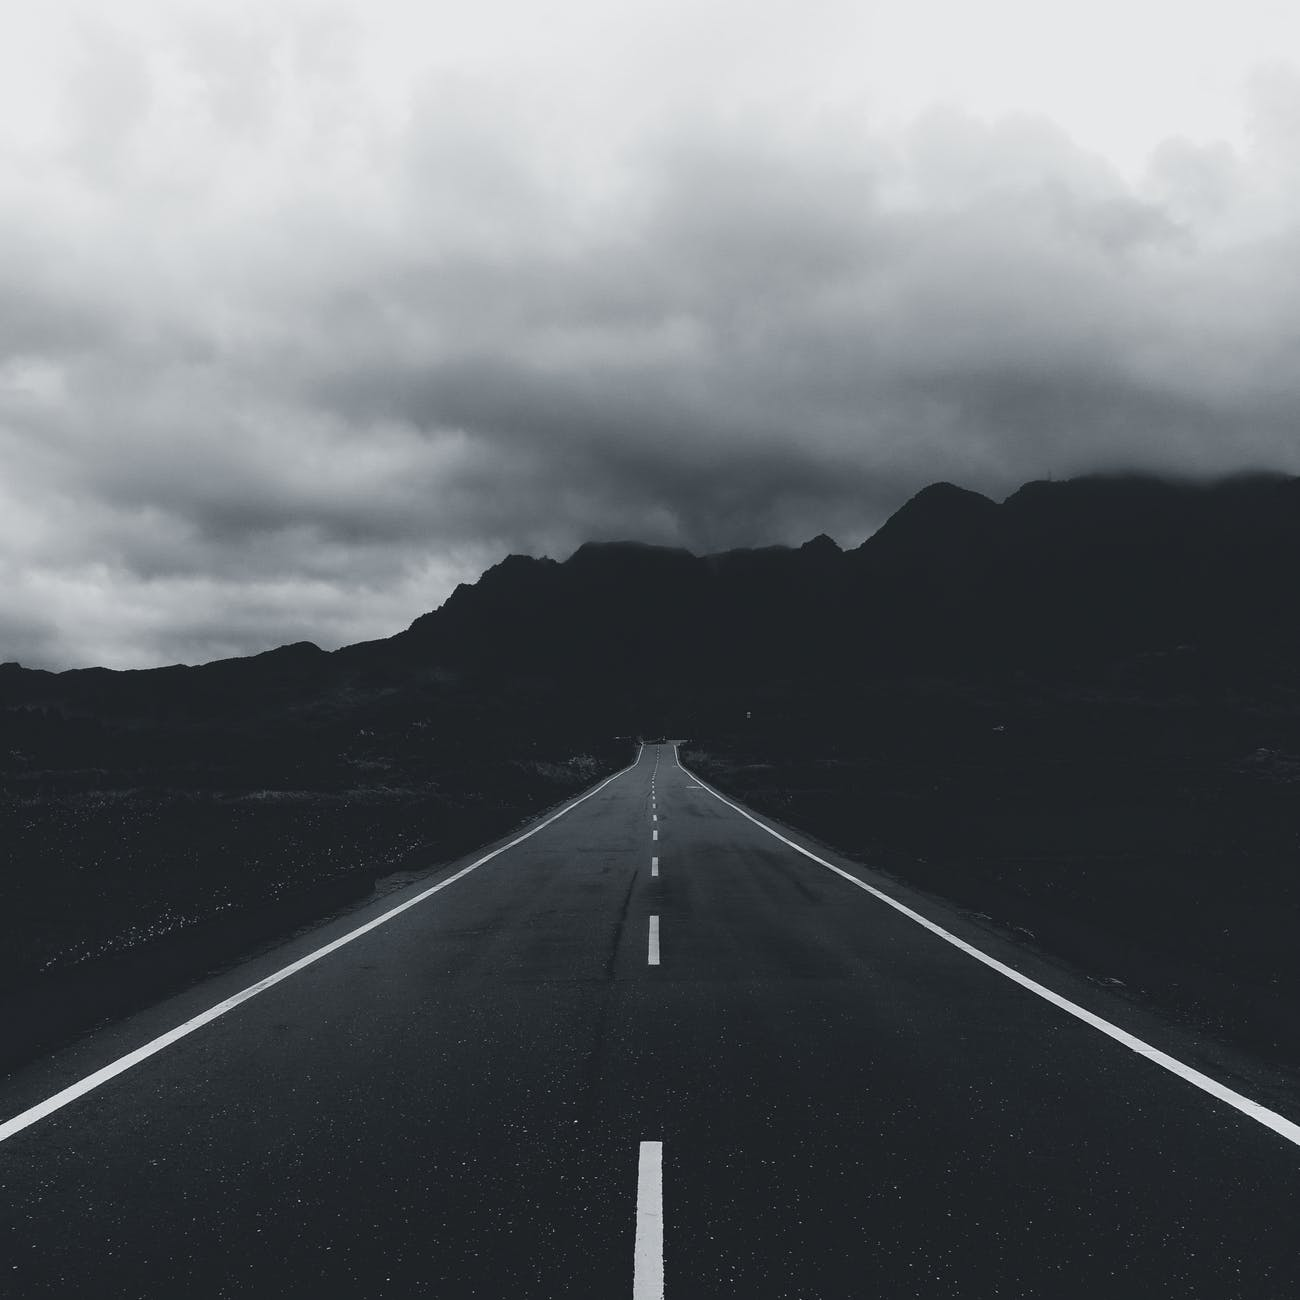 grayscale photo of a road heading to mountain